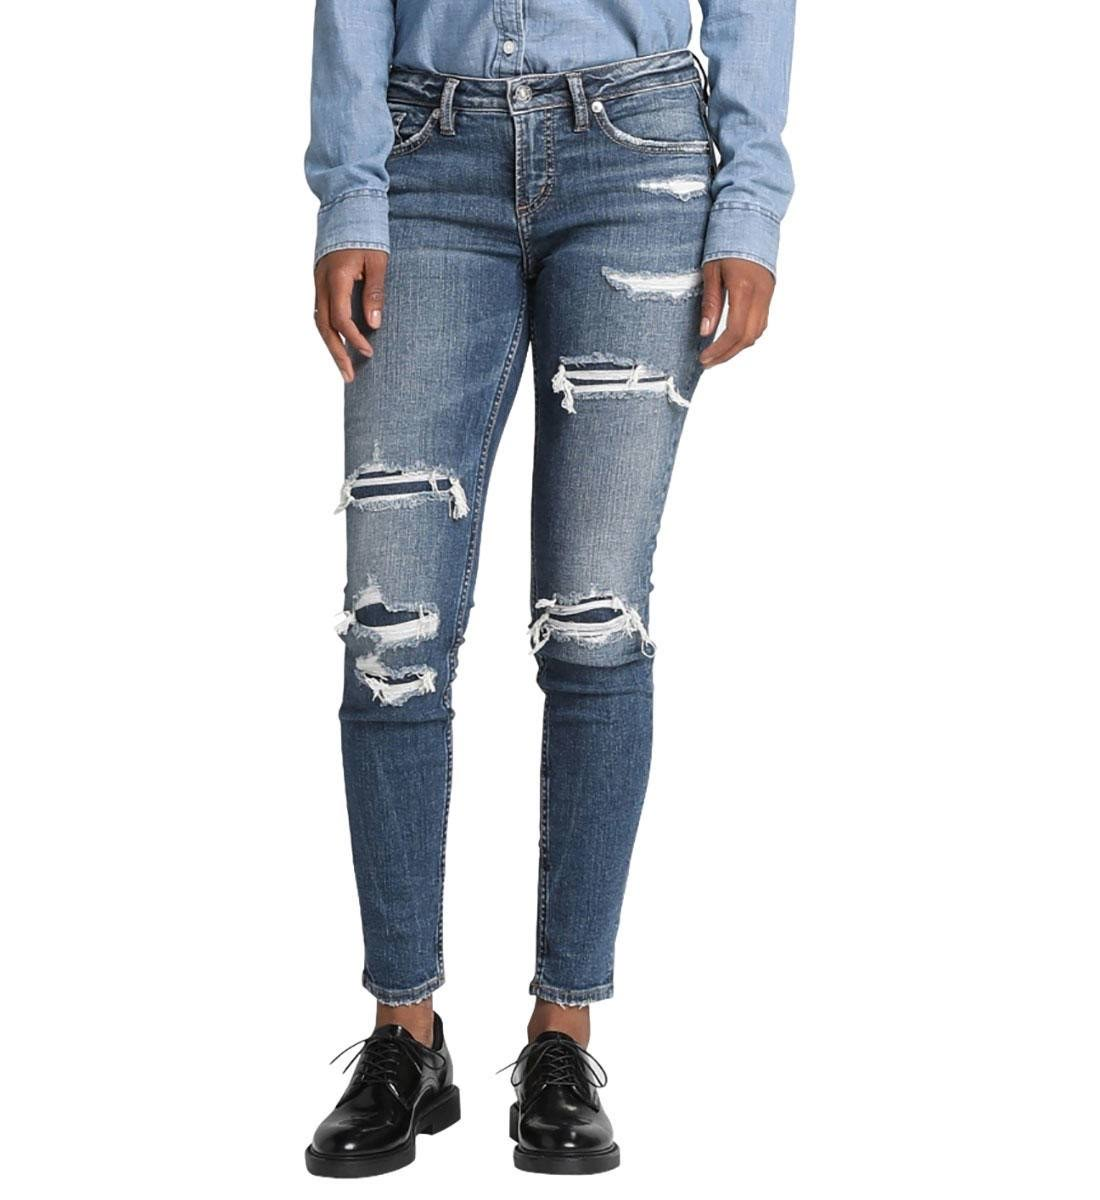 Silver Jeans Co. Aiko Destructed Skinny Jeans - Indigo 32 29